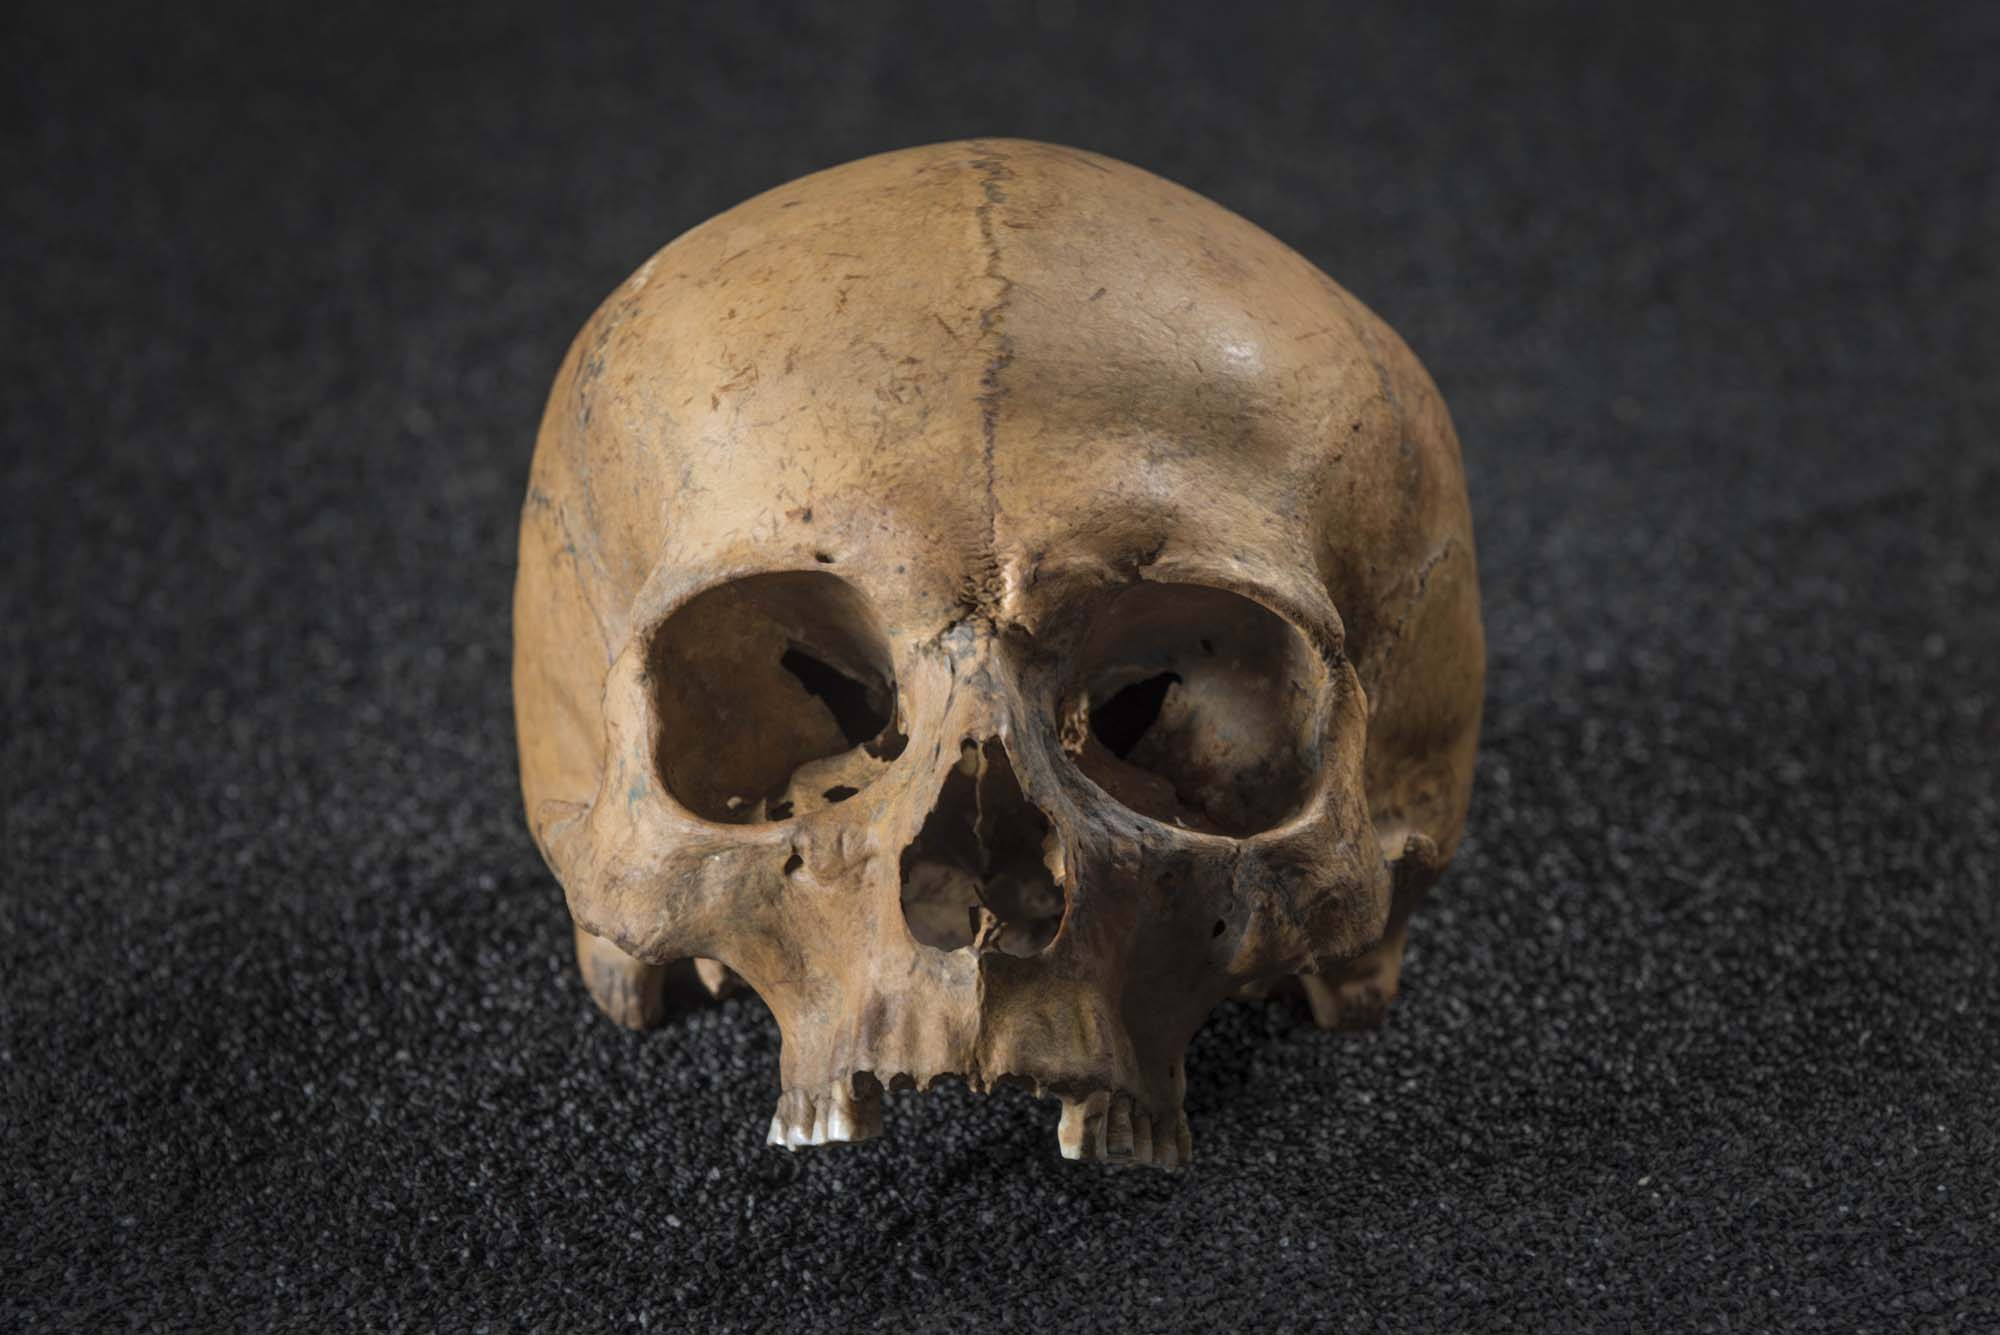 a photo of a skull